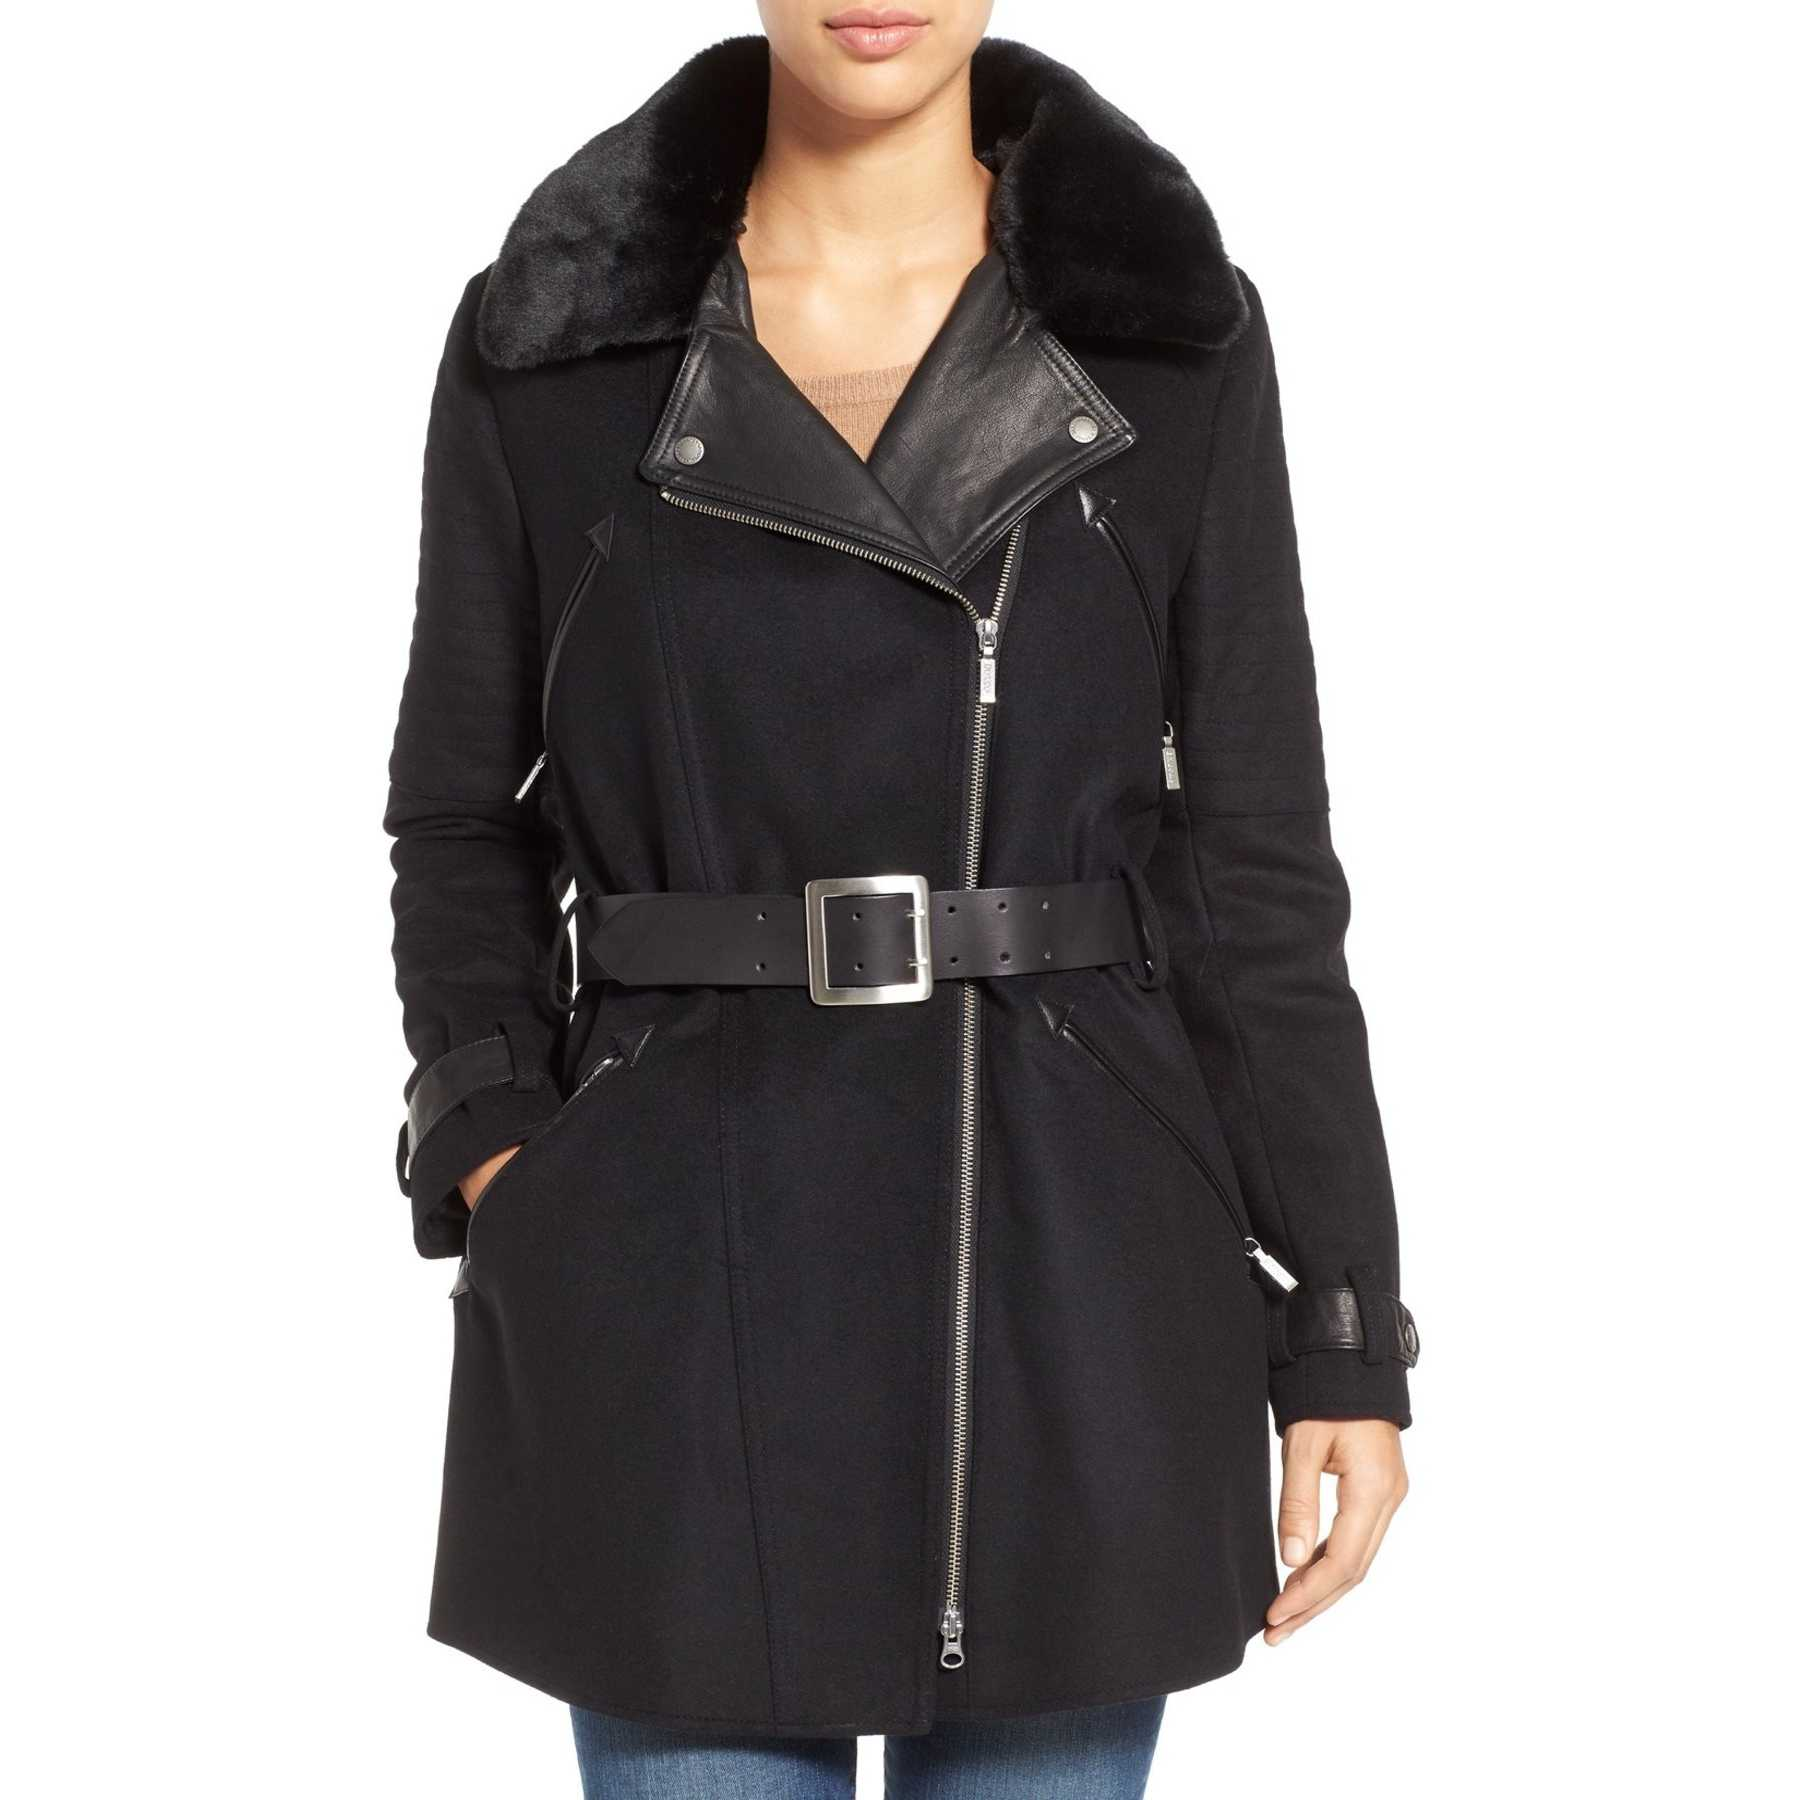 Barbour 'Valve' Wool Blend Trench Coat with Faux Fur Collar BLACK trench femei